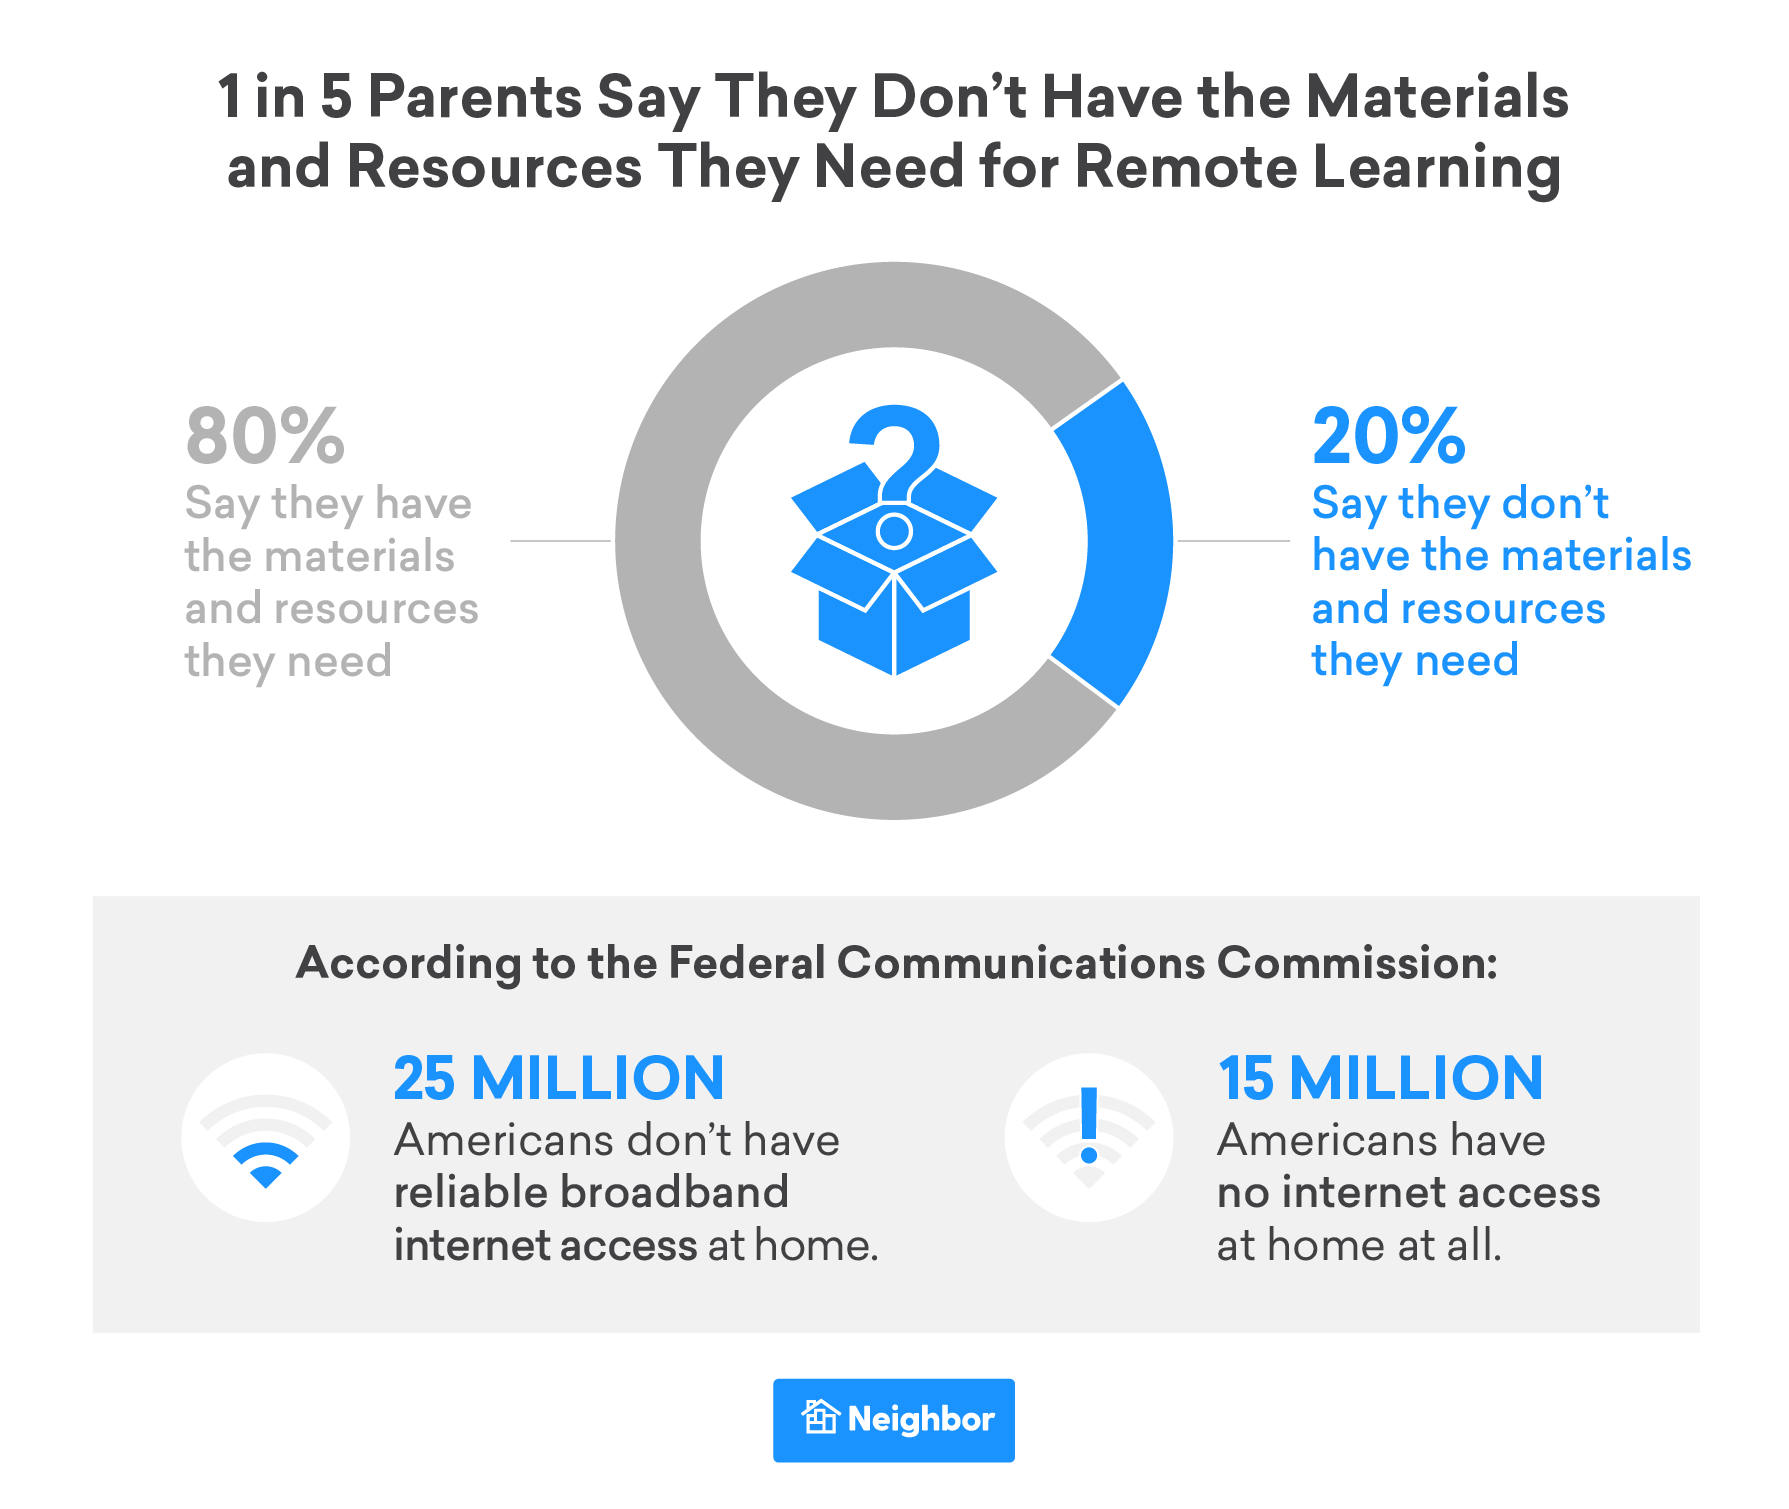 1 in 5 parents say they don't have materials for remote learning